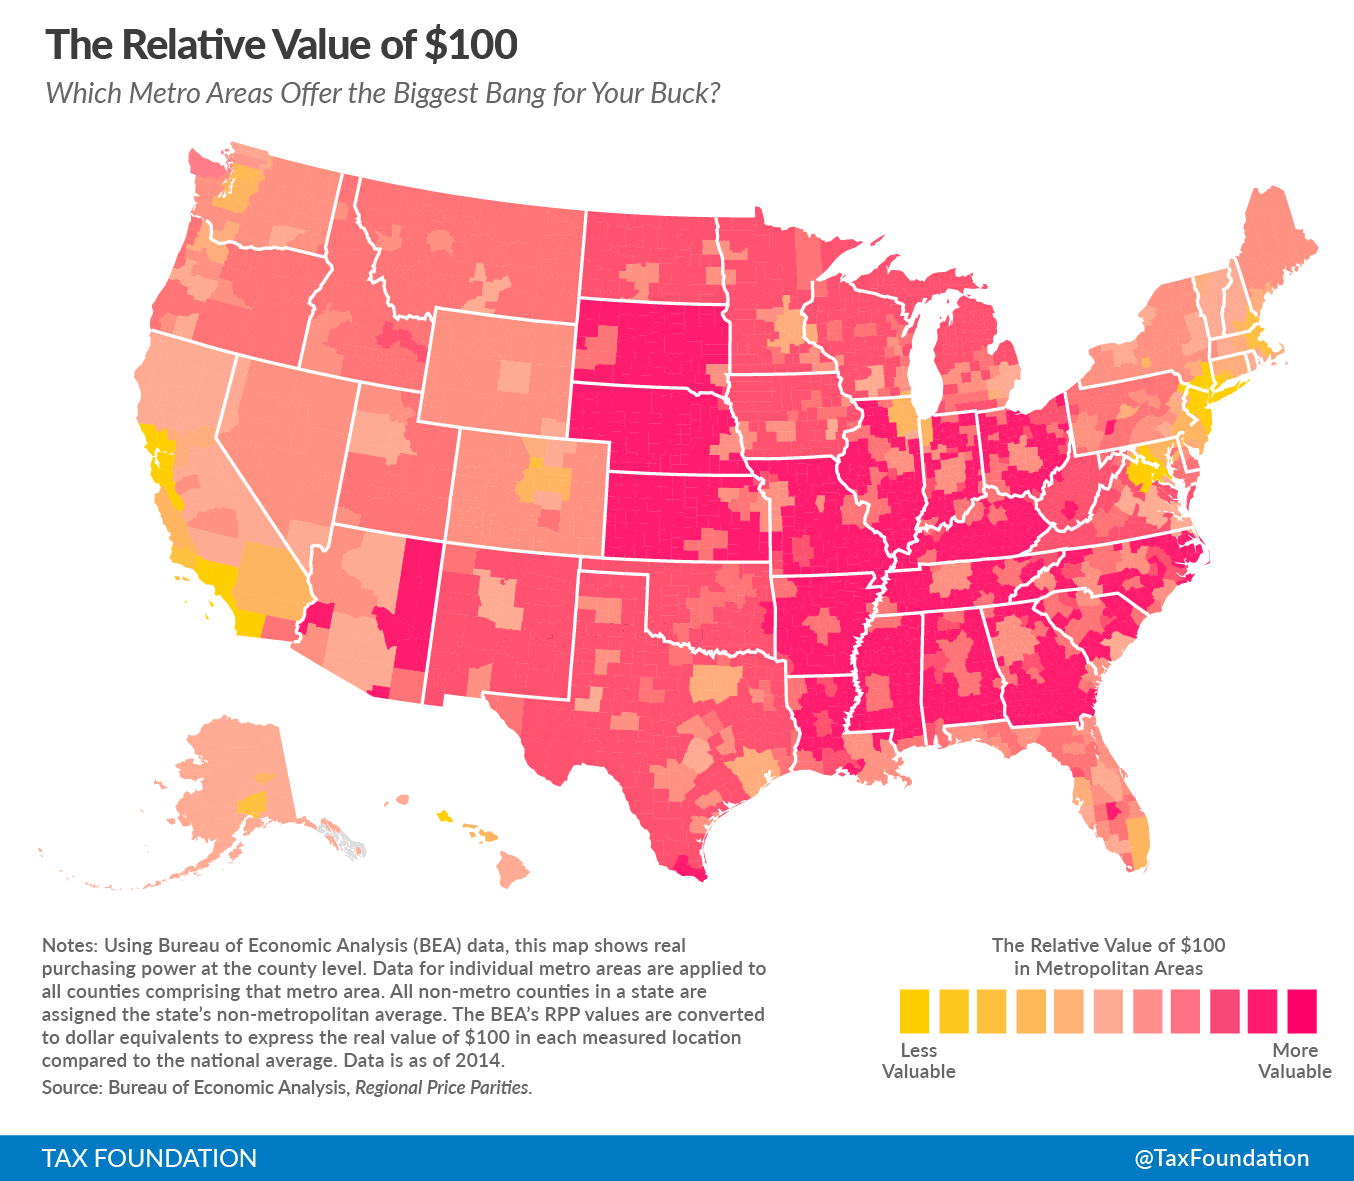 The Real Value of 100 in Metropolitan Areas Tax Foundation